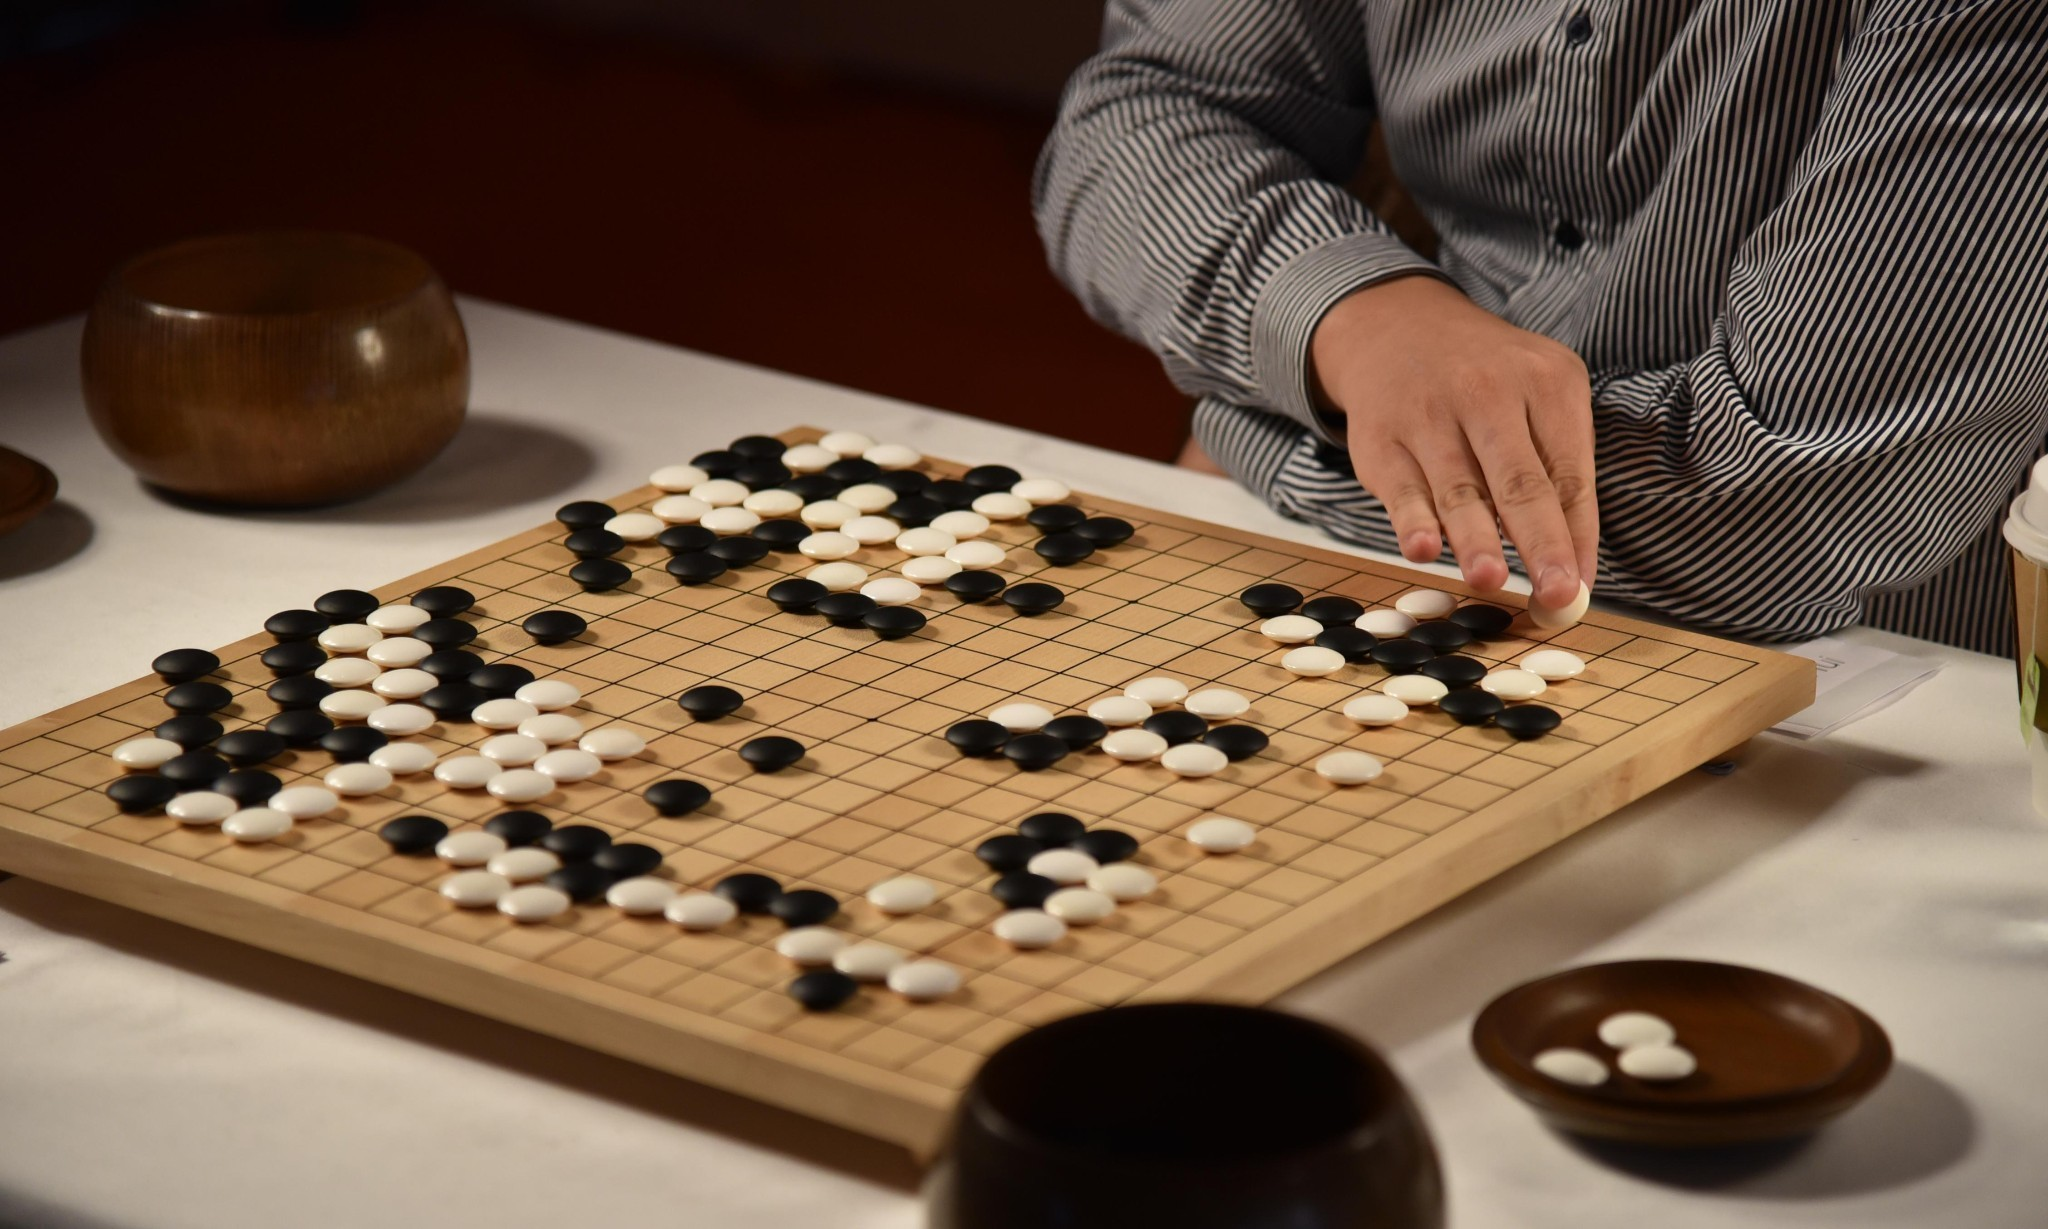 Google AI computer beats human champion of complex Go boardgame